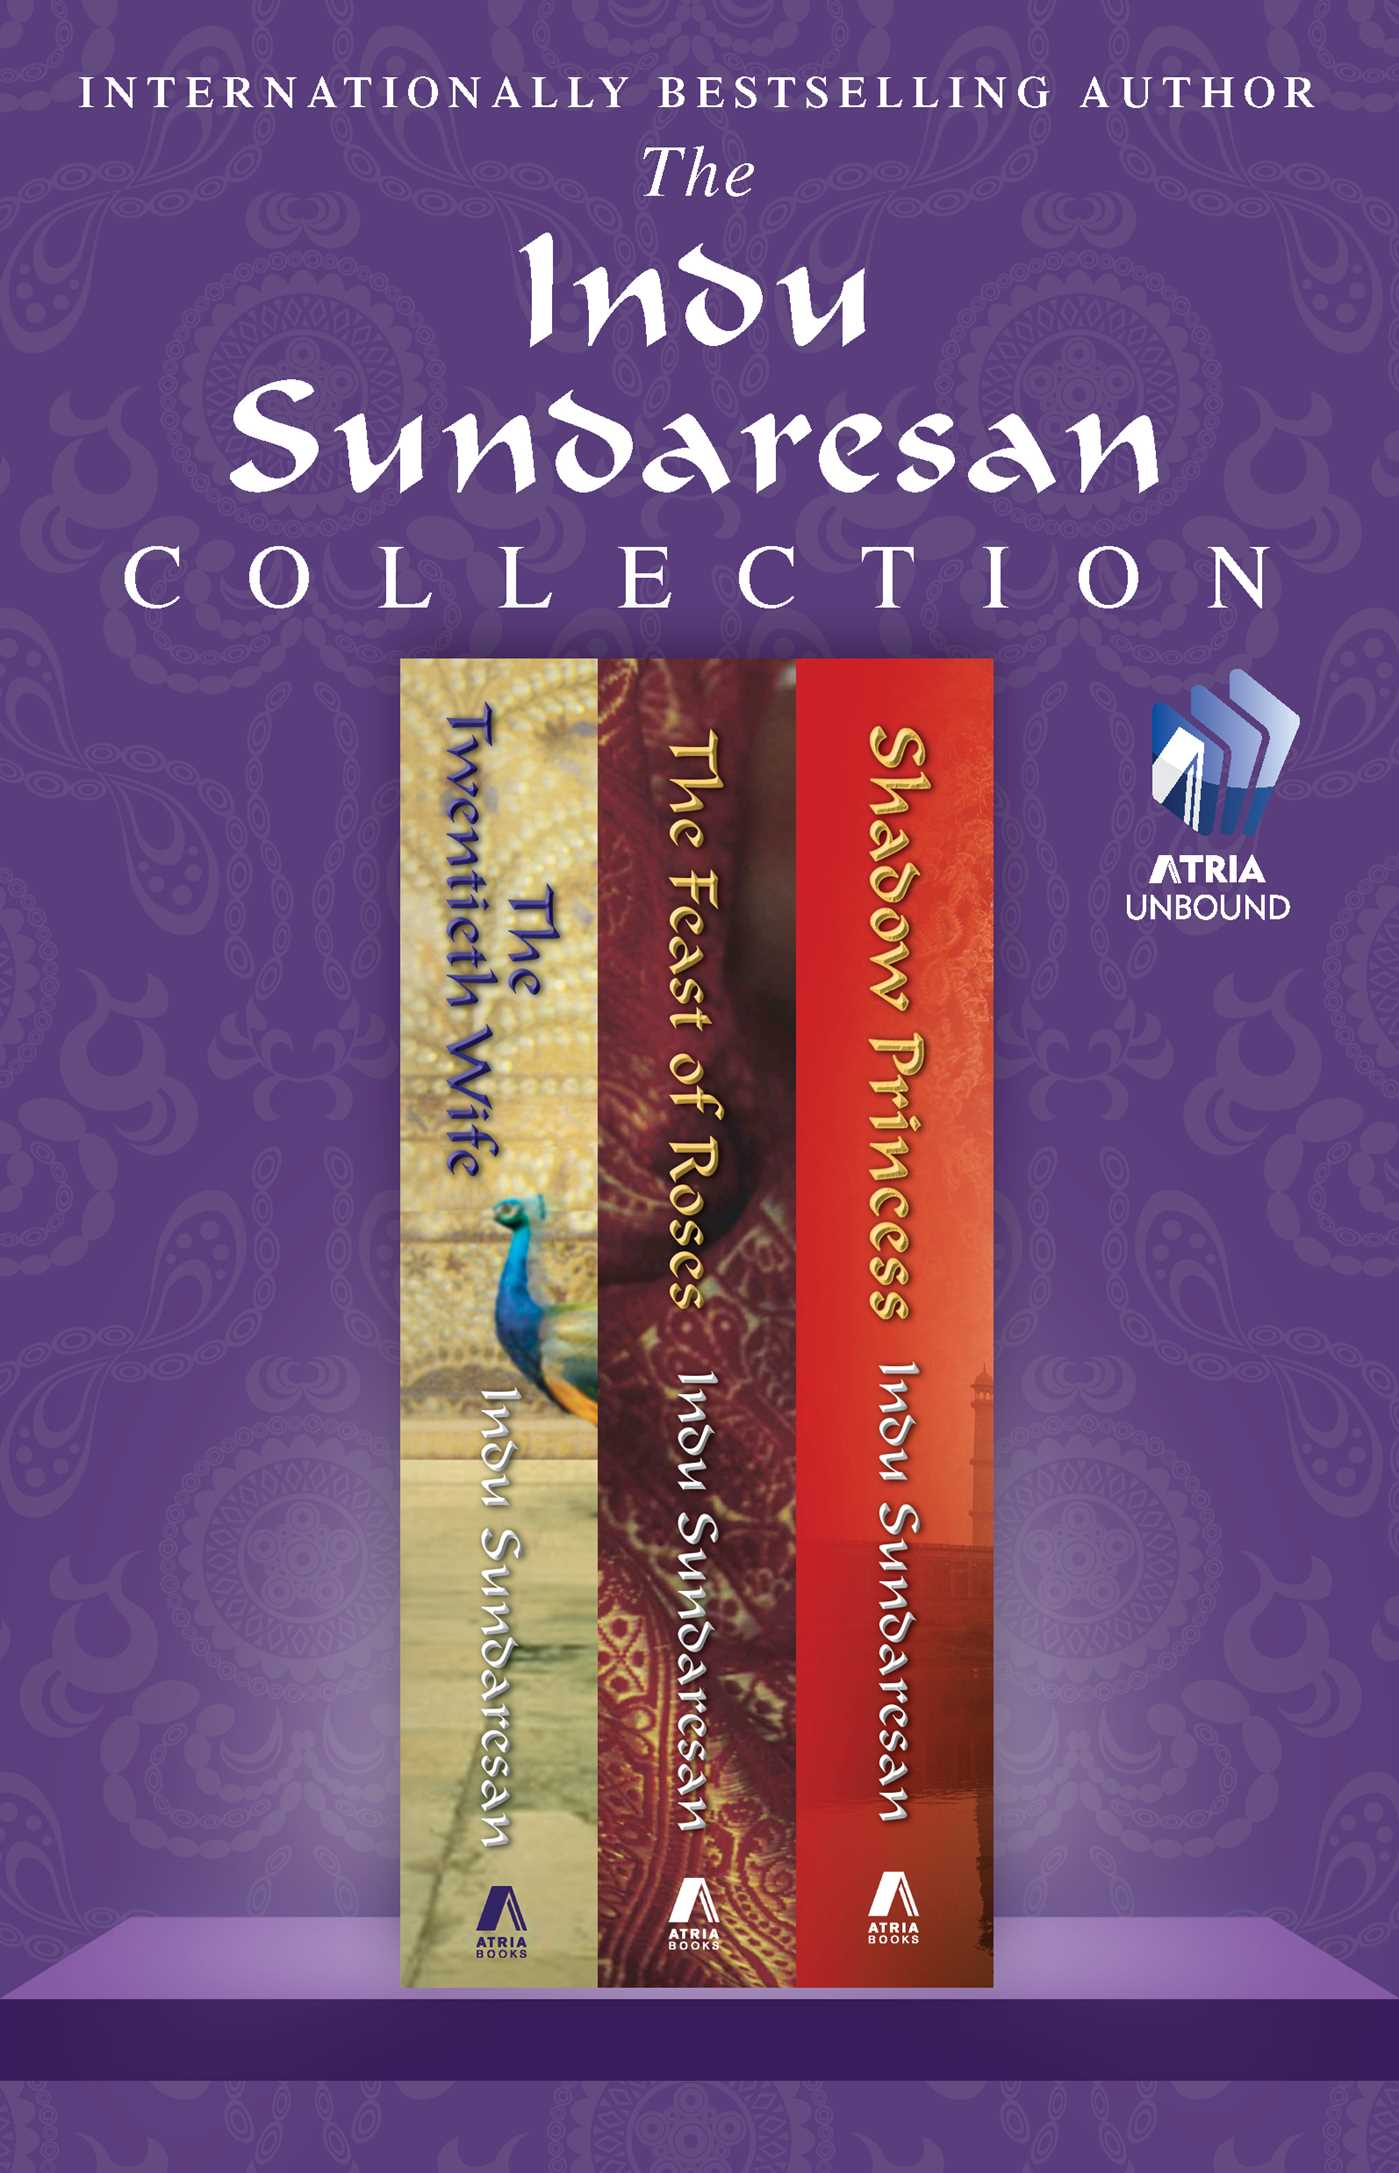 Book Cover Image (jpg): The Indu Sundaresan Collection